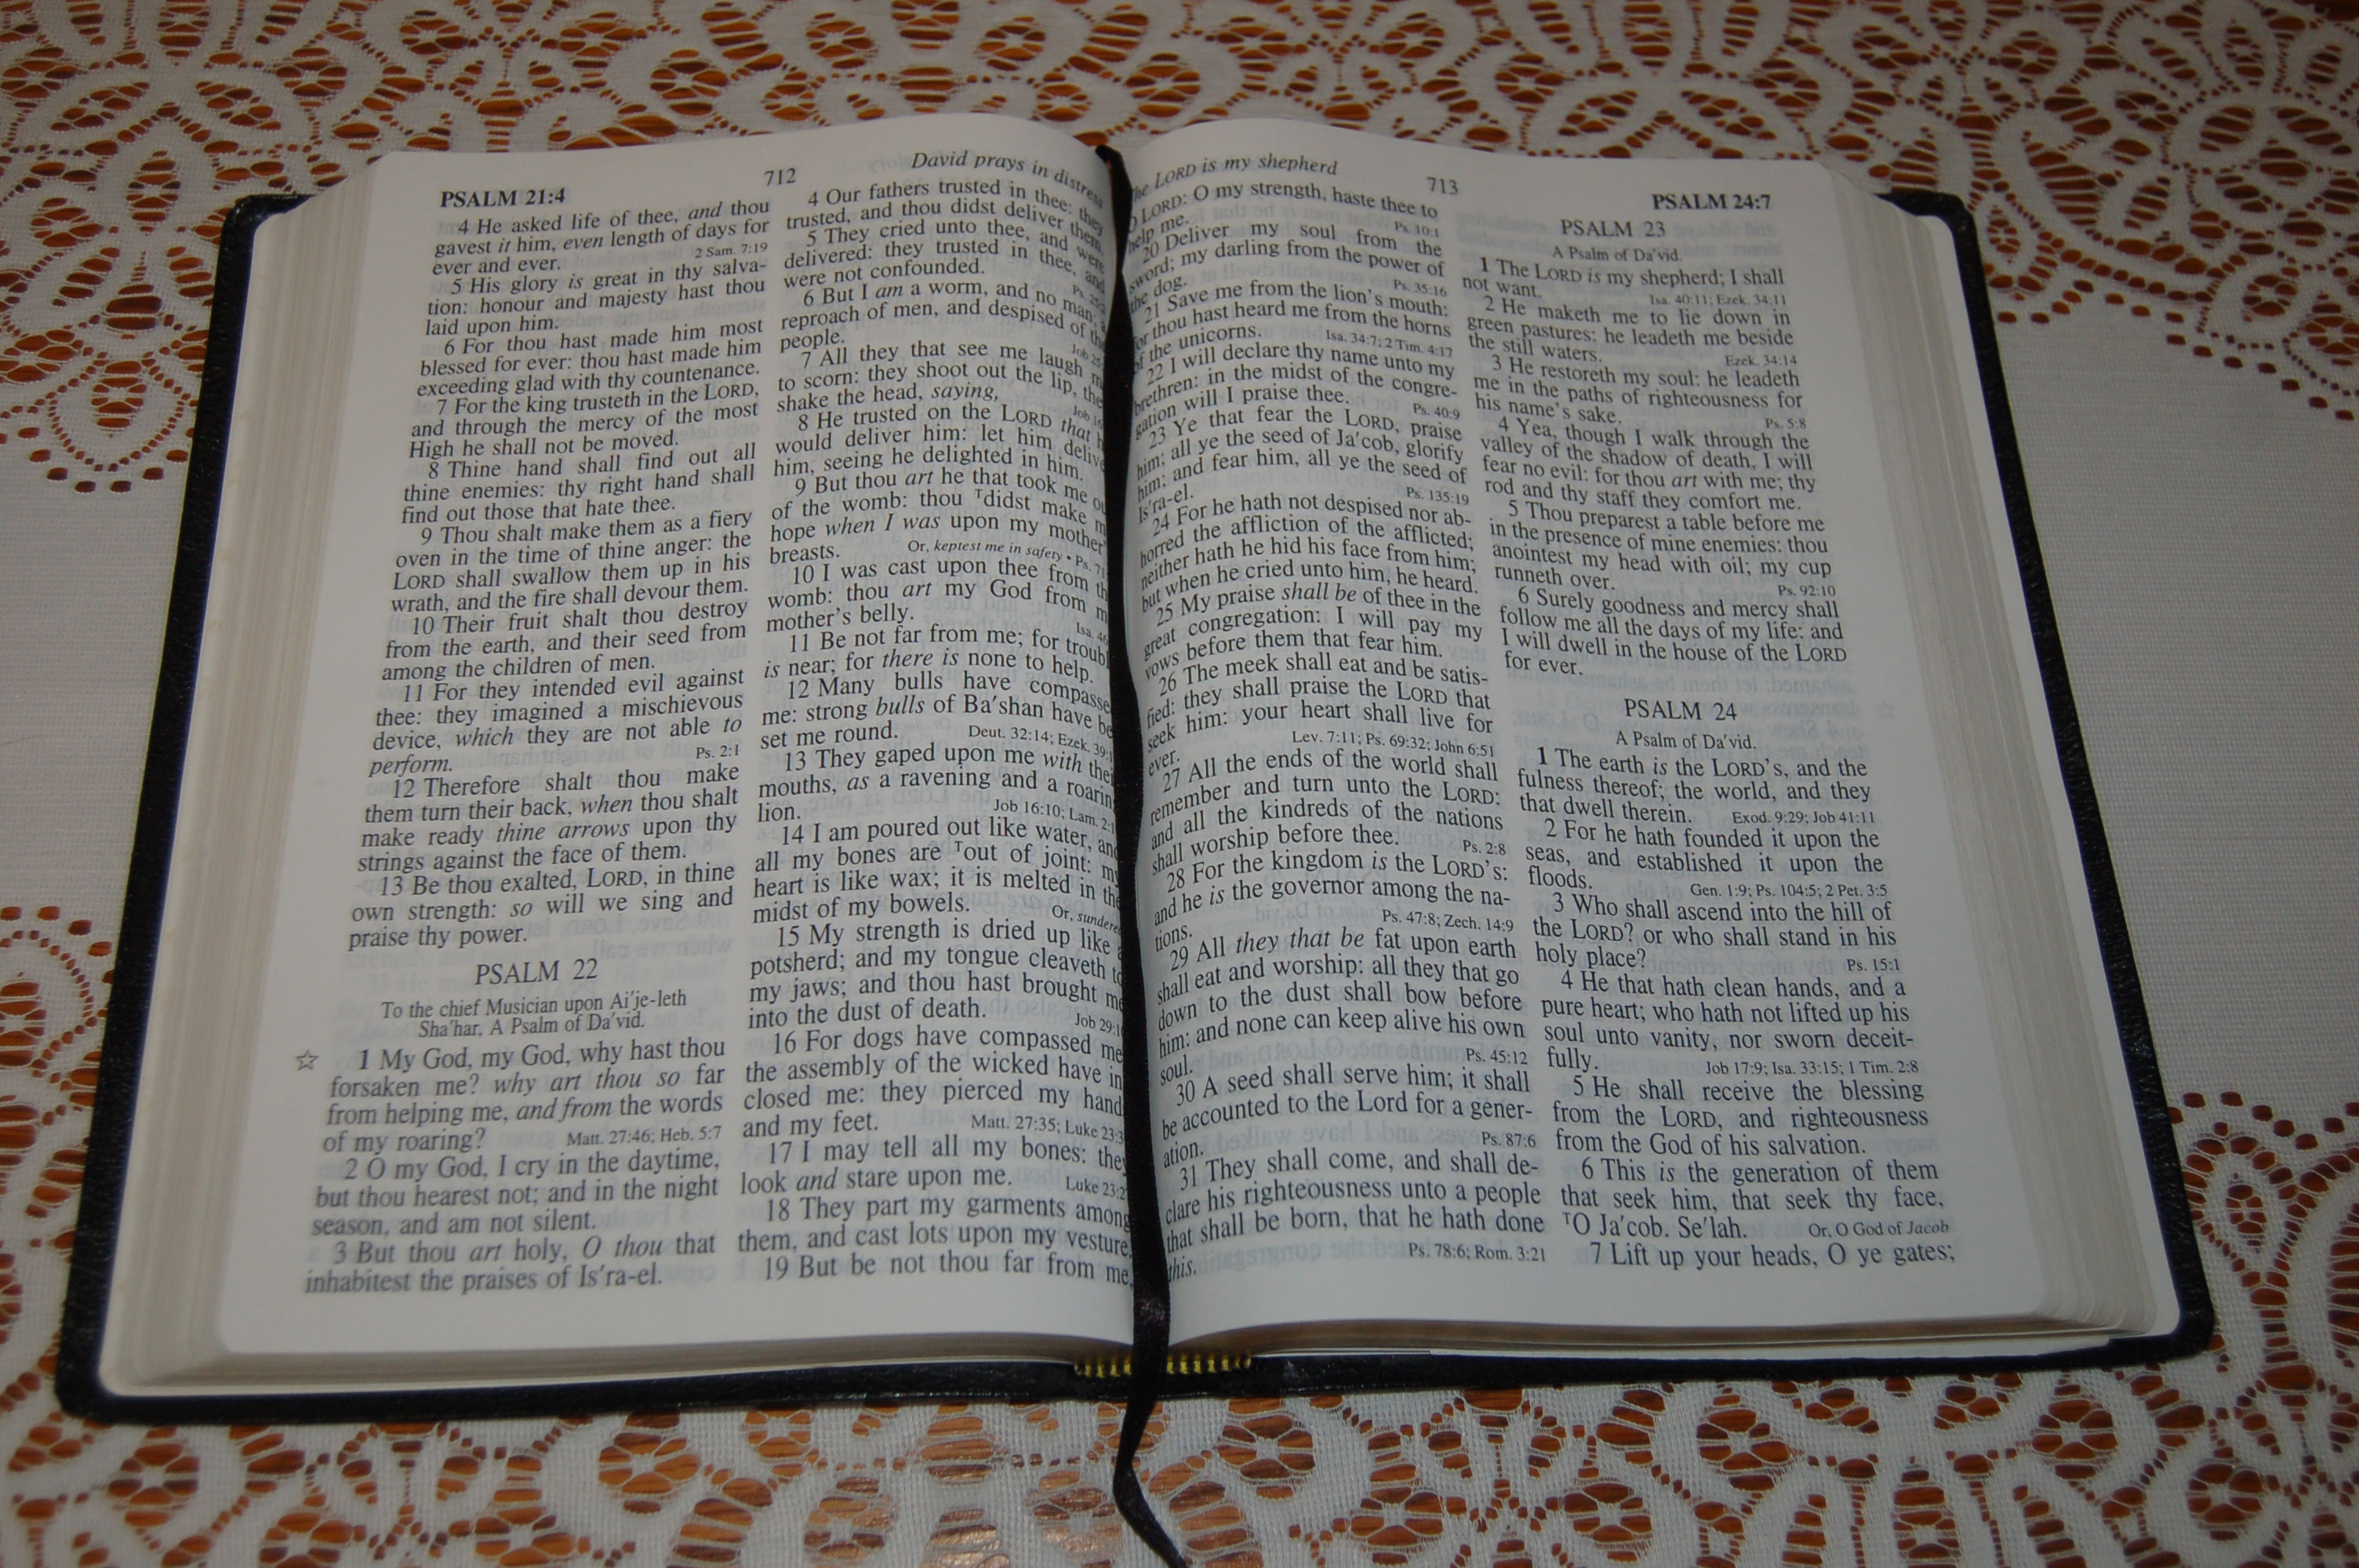 Christian Stock Photos by Linda Bateman - Open Bible on White Lace Tablecloth